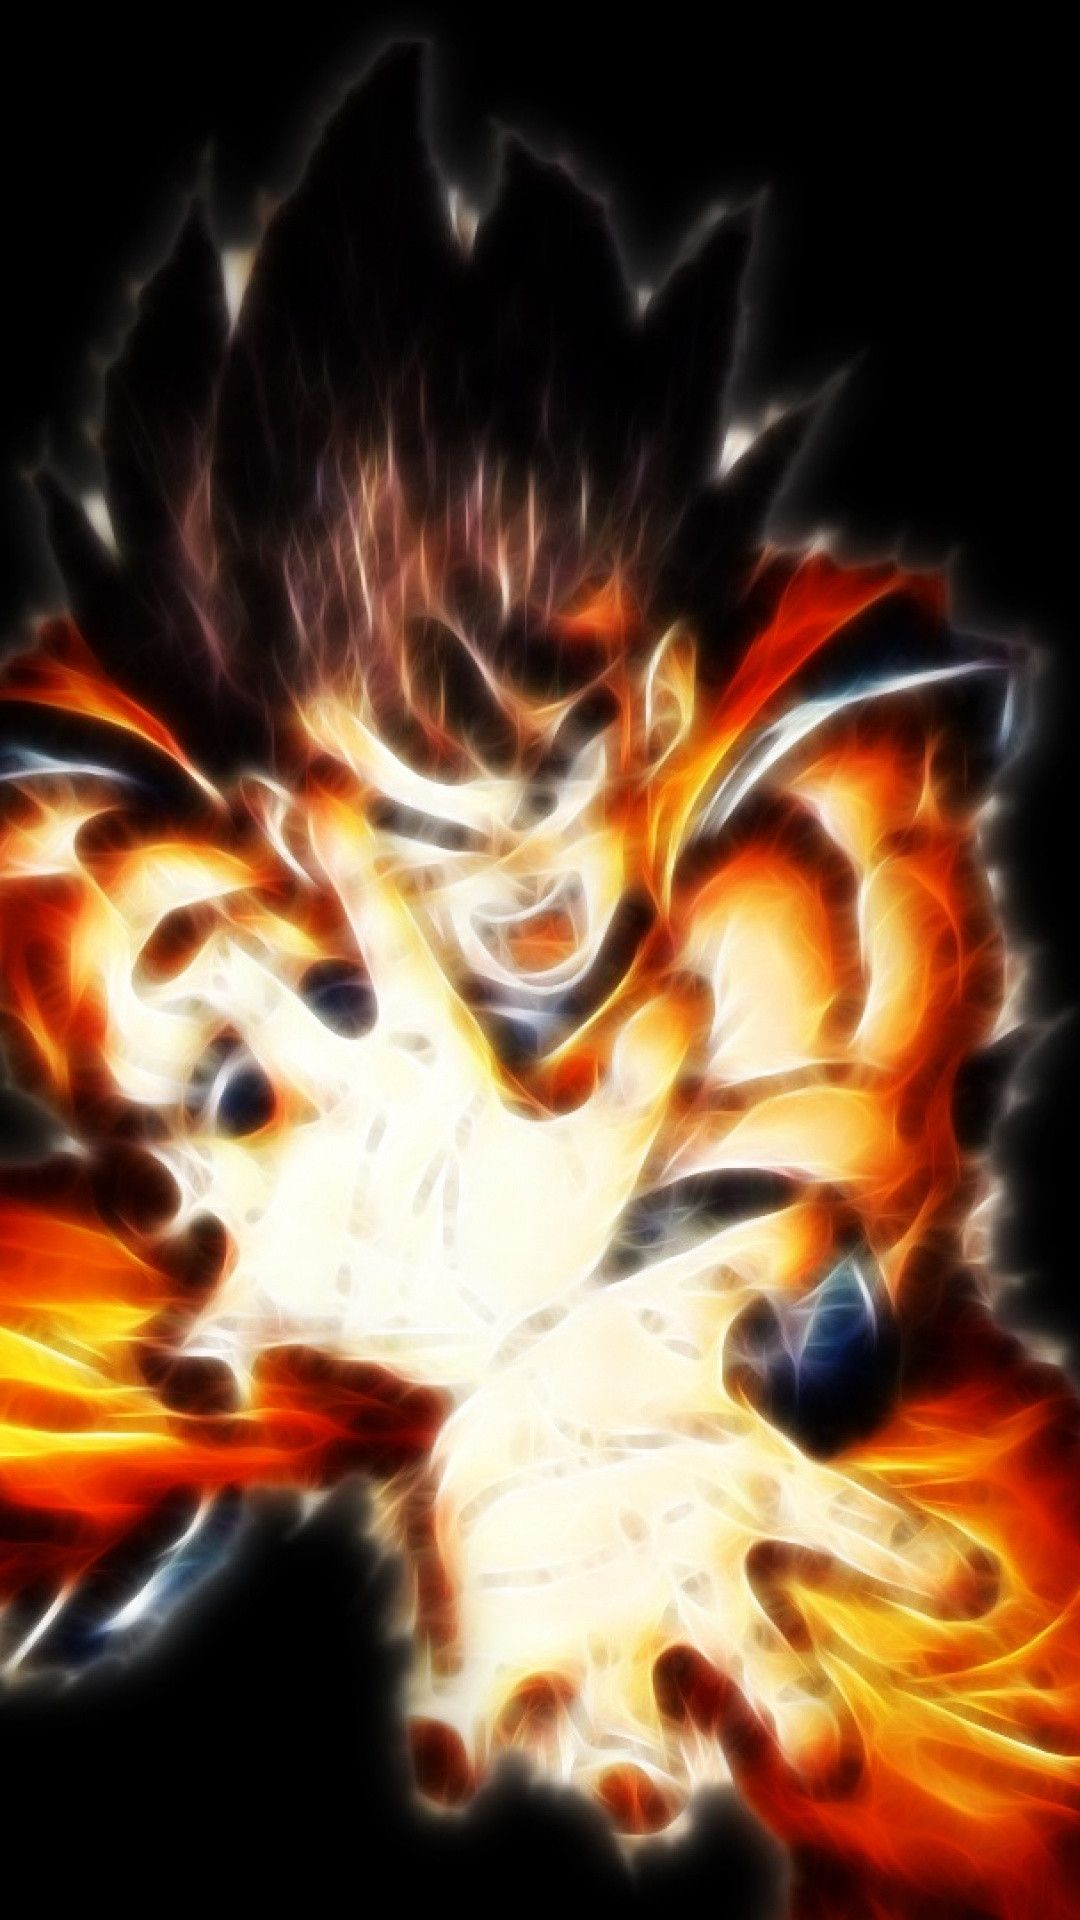 Dragon Ball Z Iphone Wallpapers Top Free Dragon Ball Z Iphone